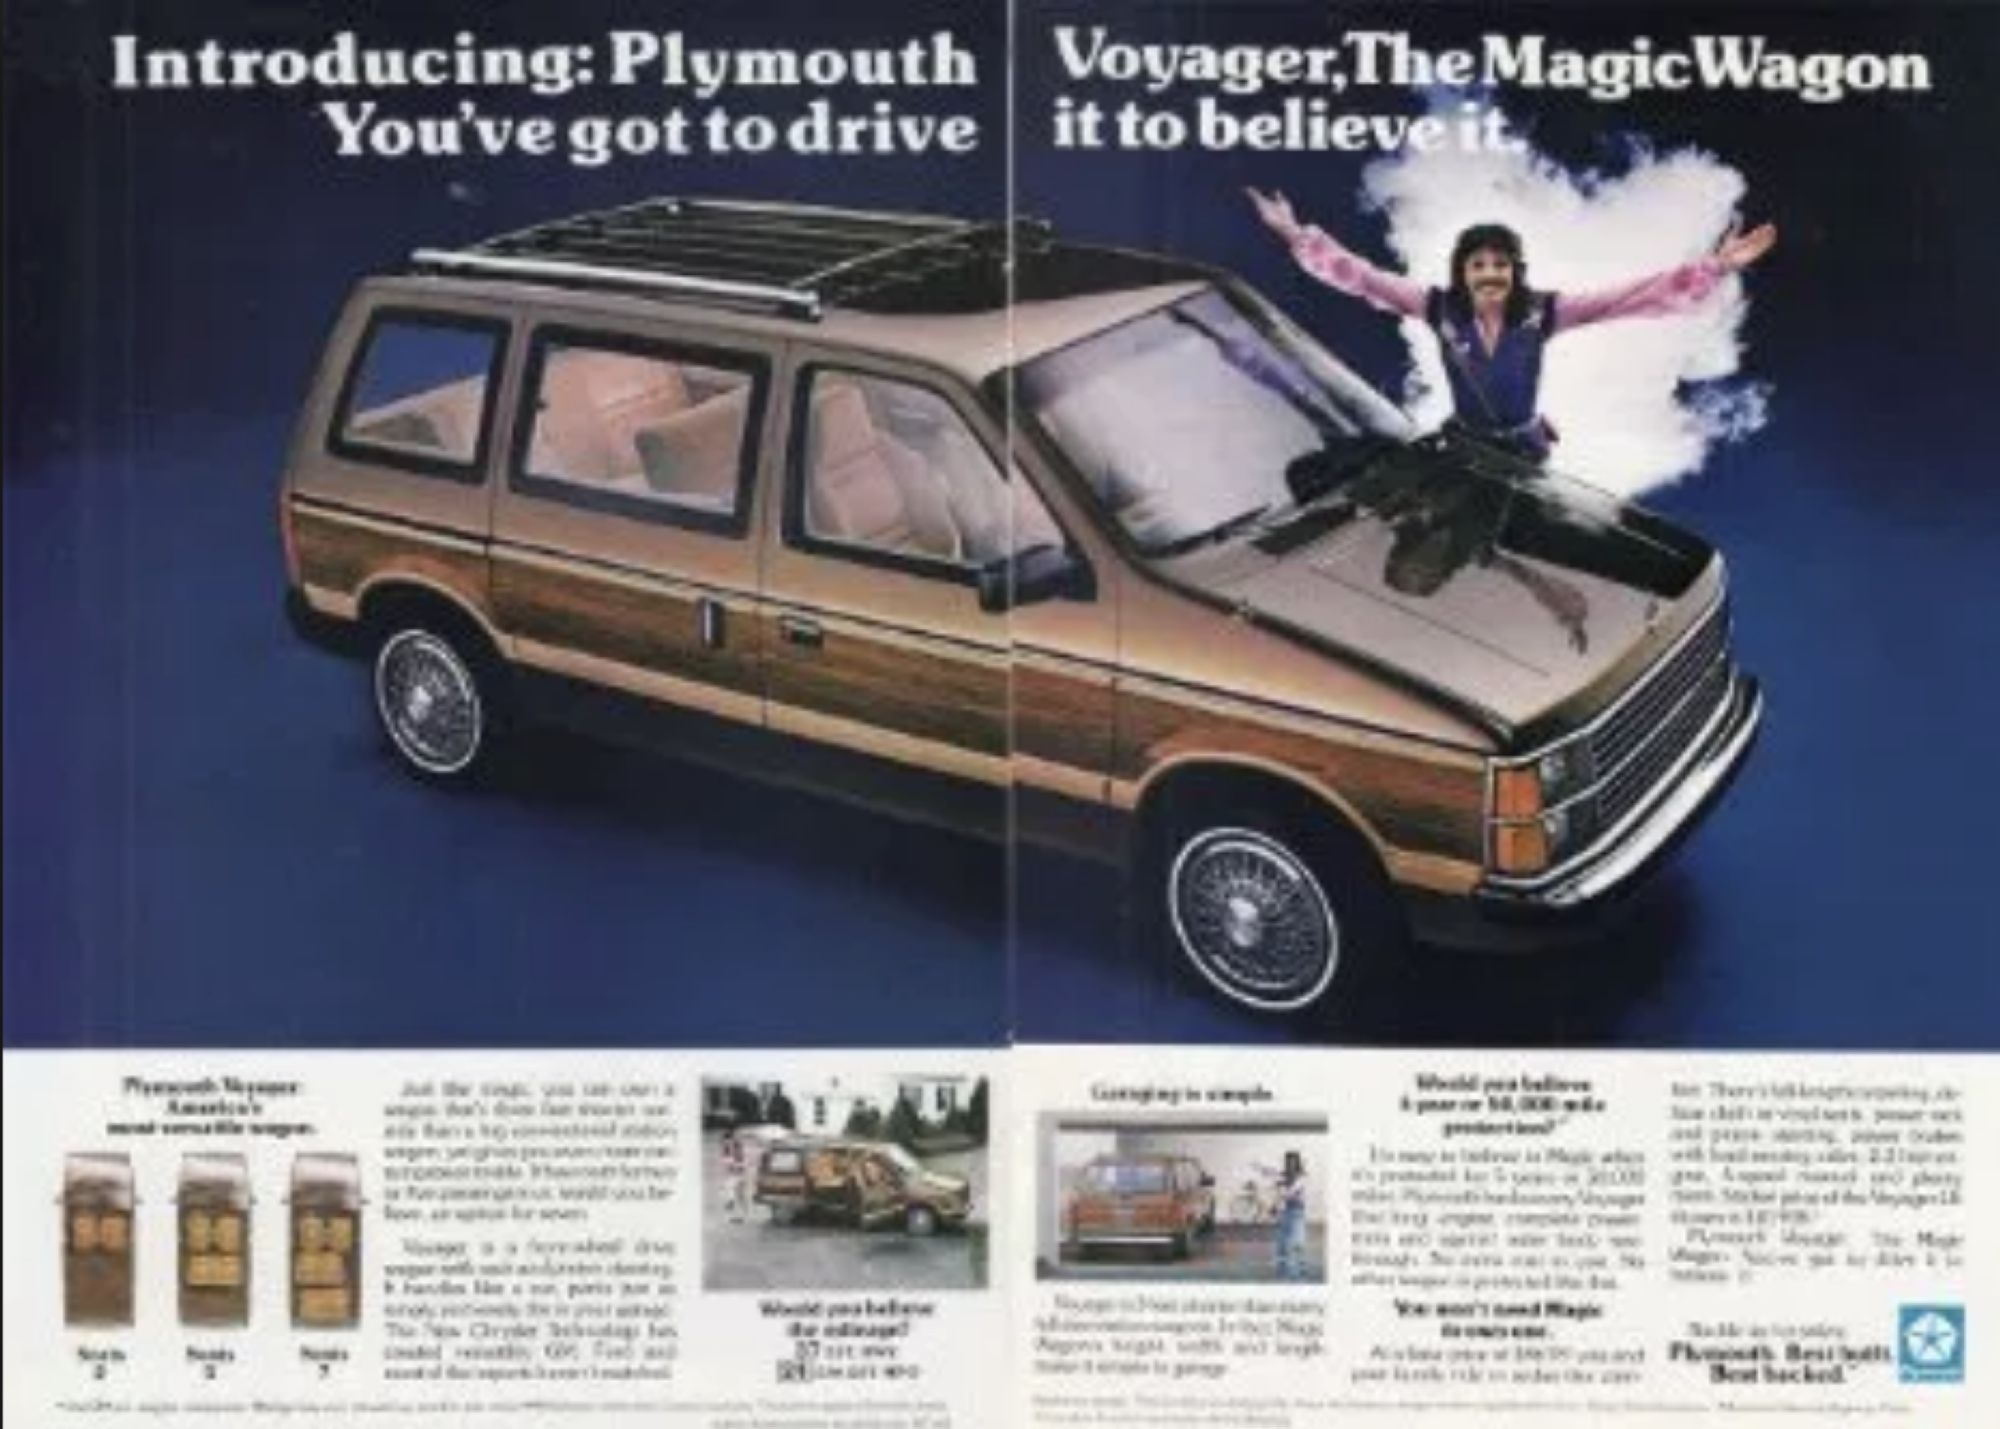 10-Plymouth-Voyager-doug-henning